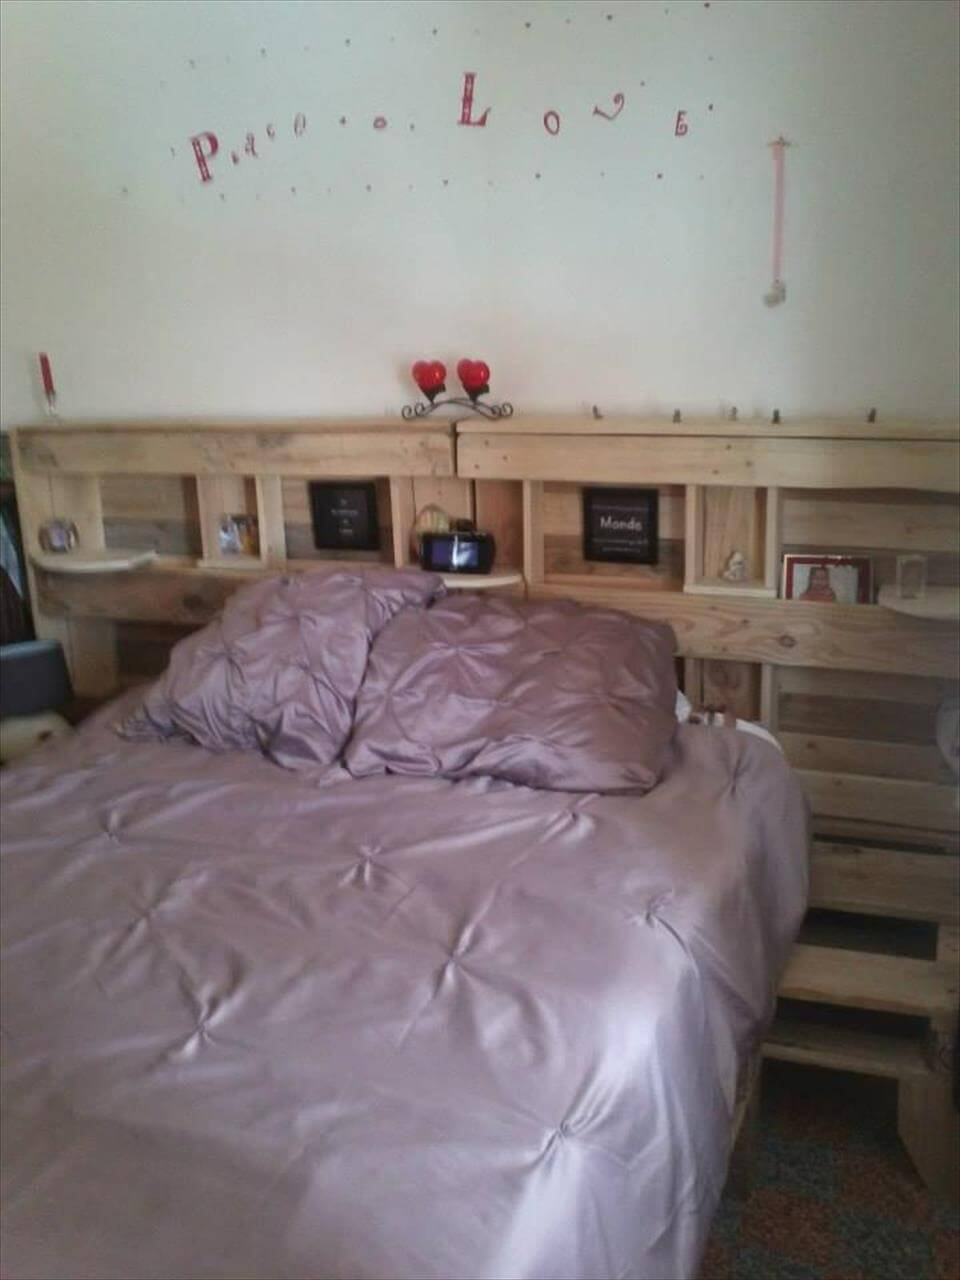 wooden-pallet-bed-with-storage-friendly-headboard.jpg